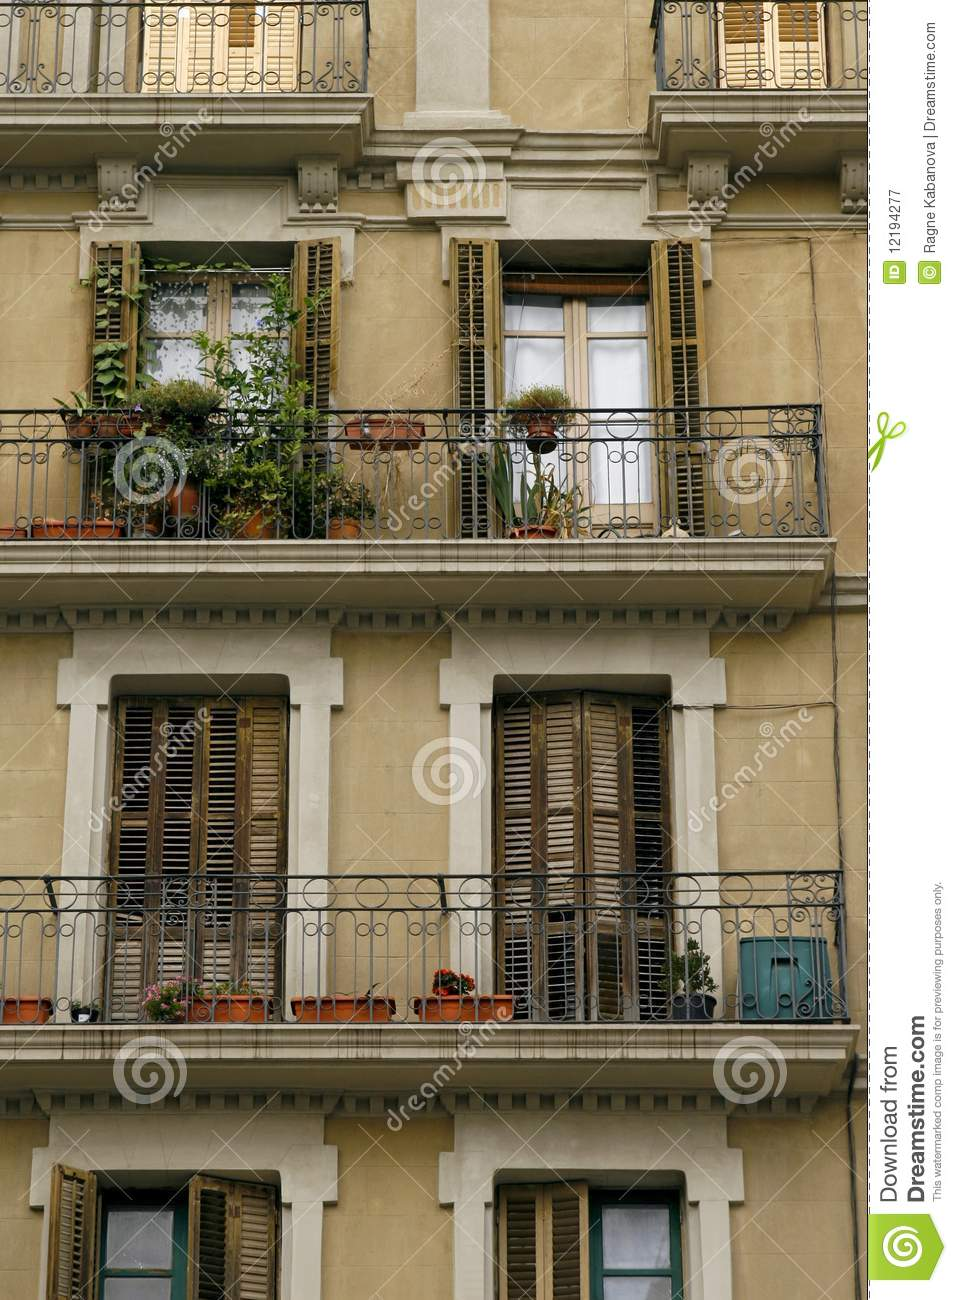 Facade of an old house in barcelona spain stock image for Classic house facades